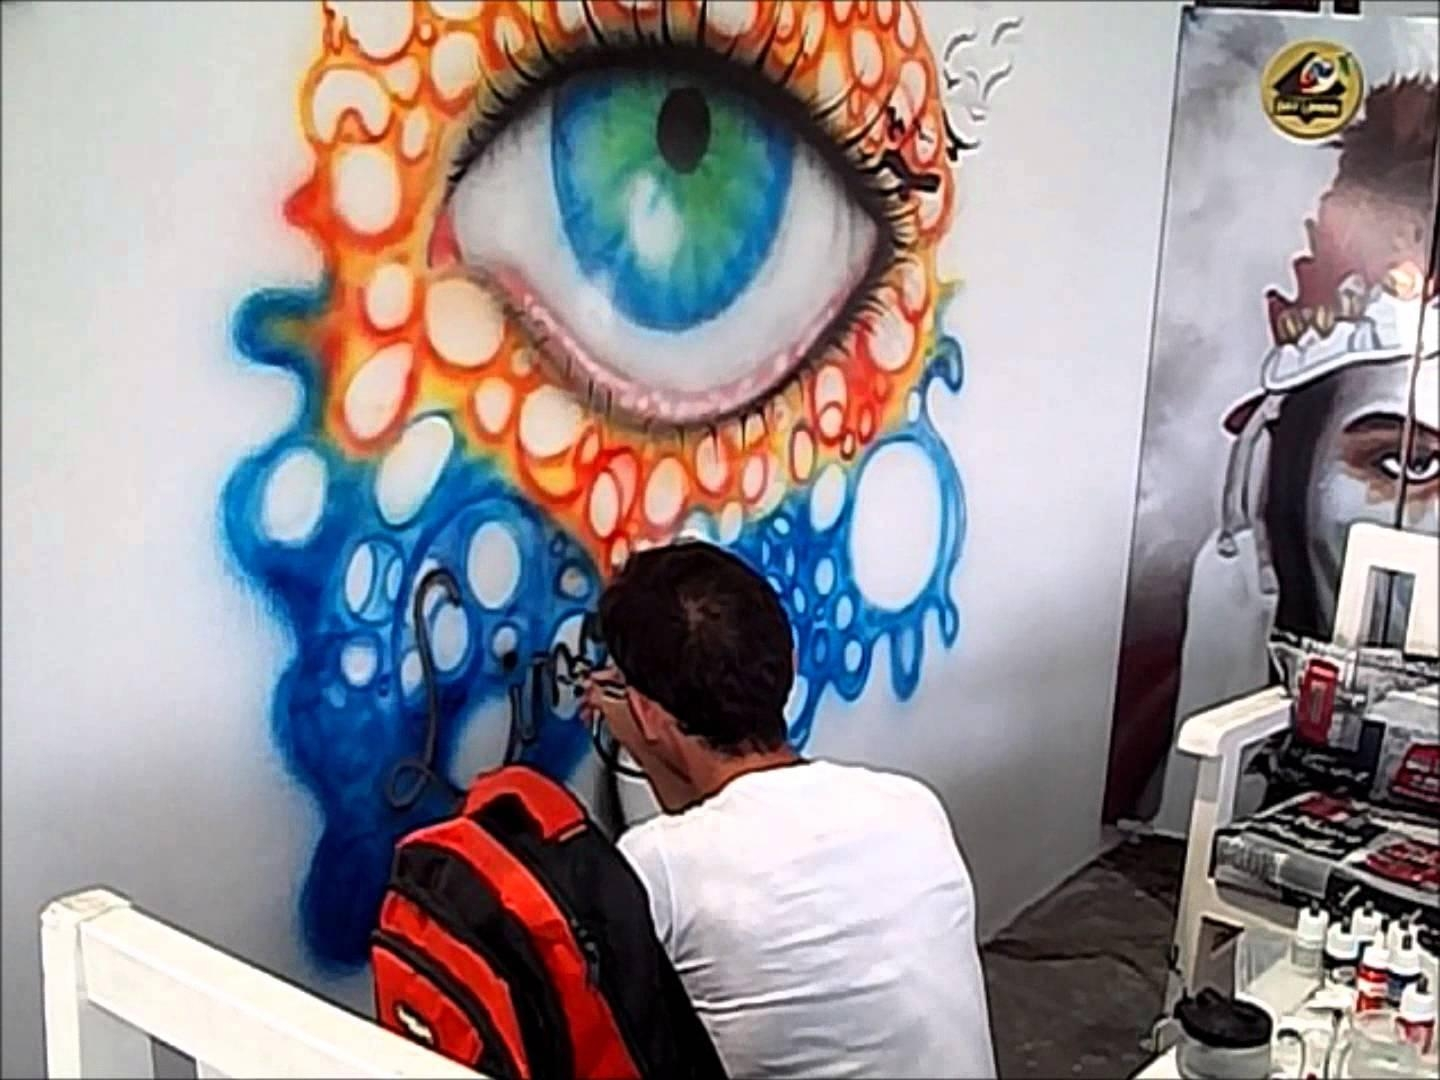 Gelibolu Doğan Dinç Airbrush Painting Eye Paint On Wall Mural Within Airbrush Wall Art (Image 11 of 20)